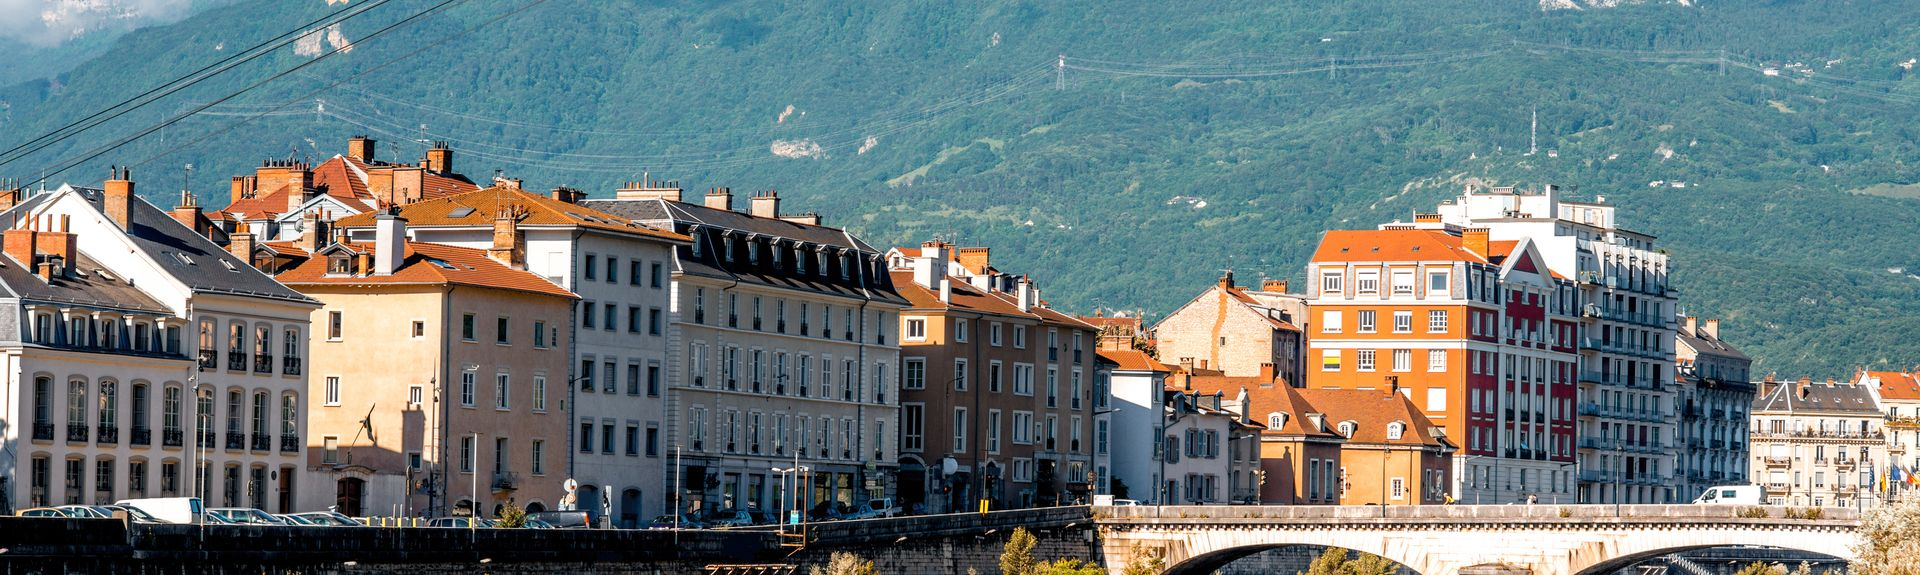 Grenoble, Isere, France